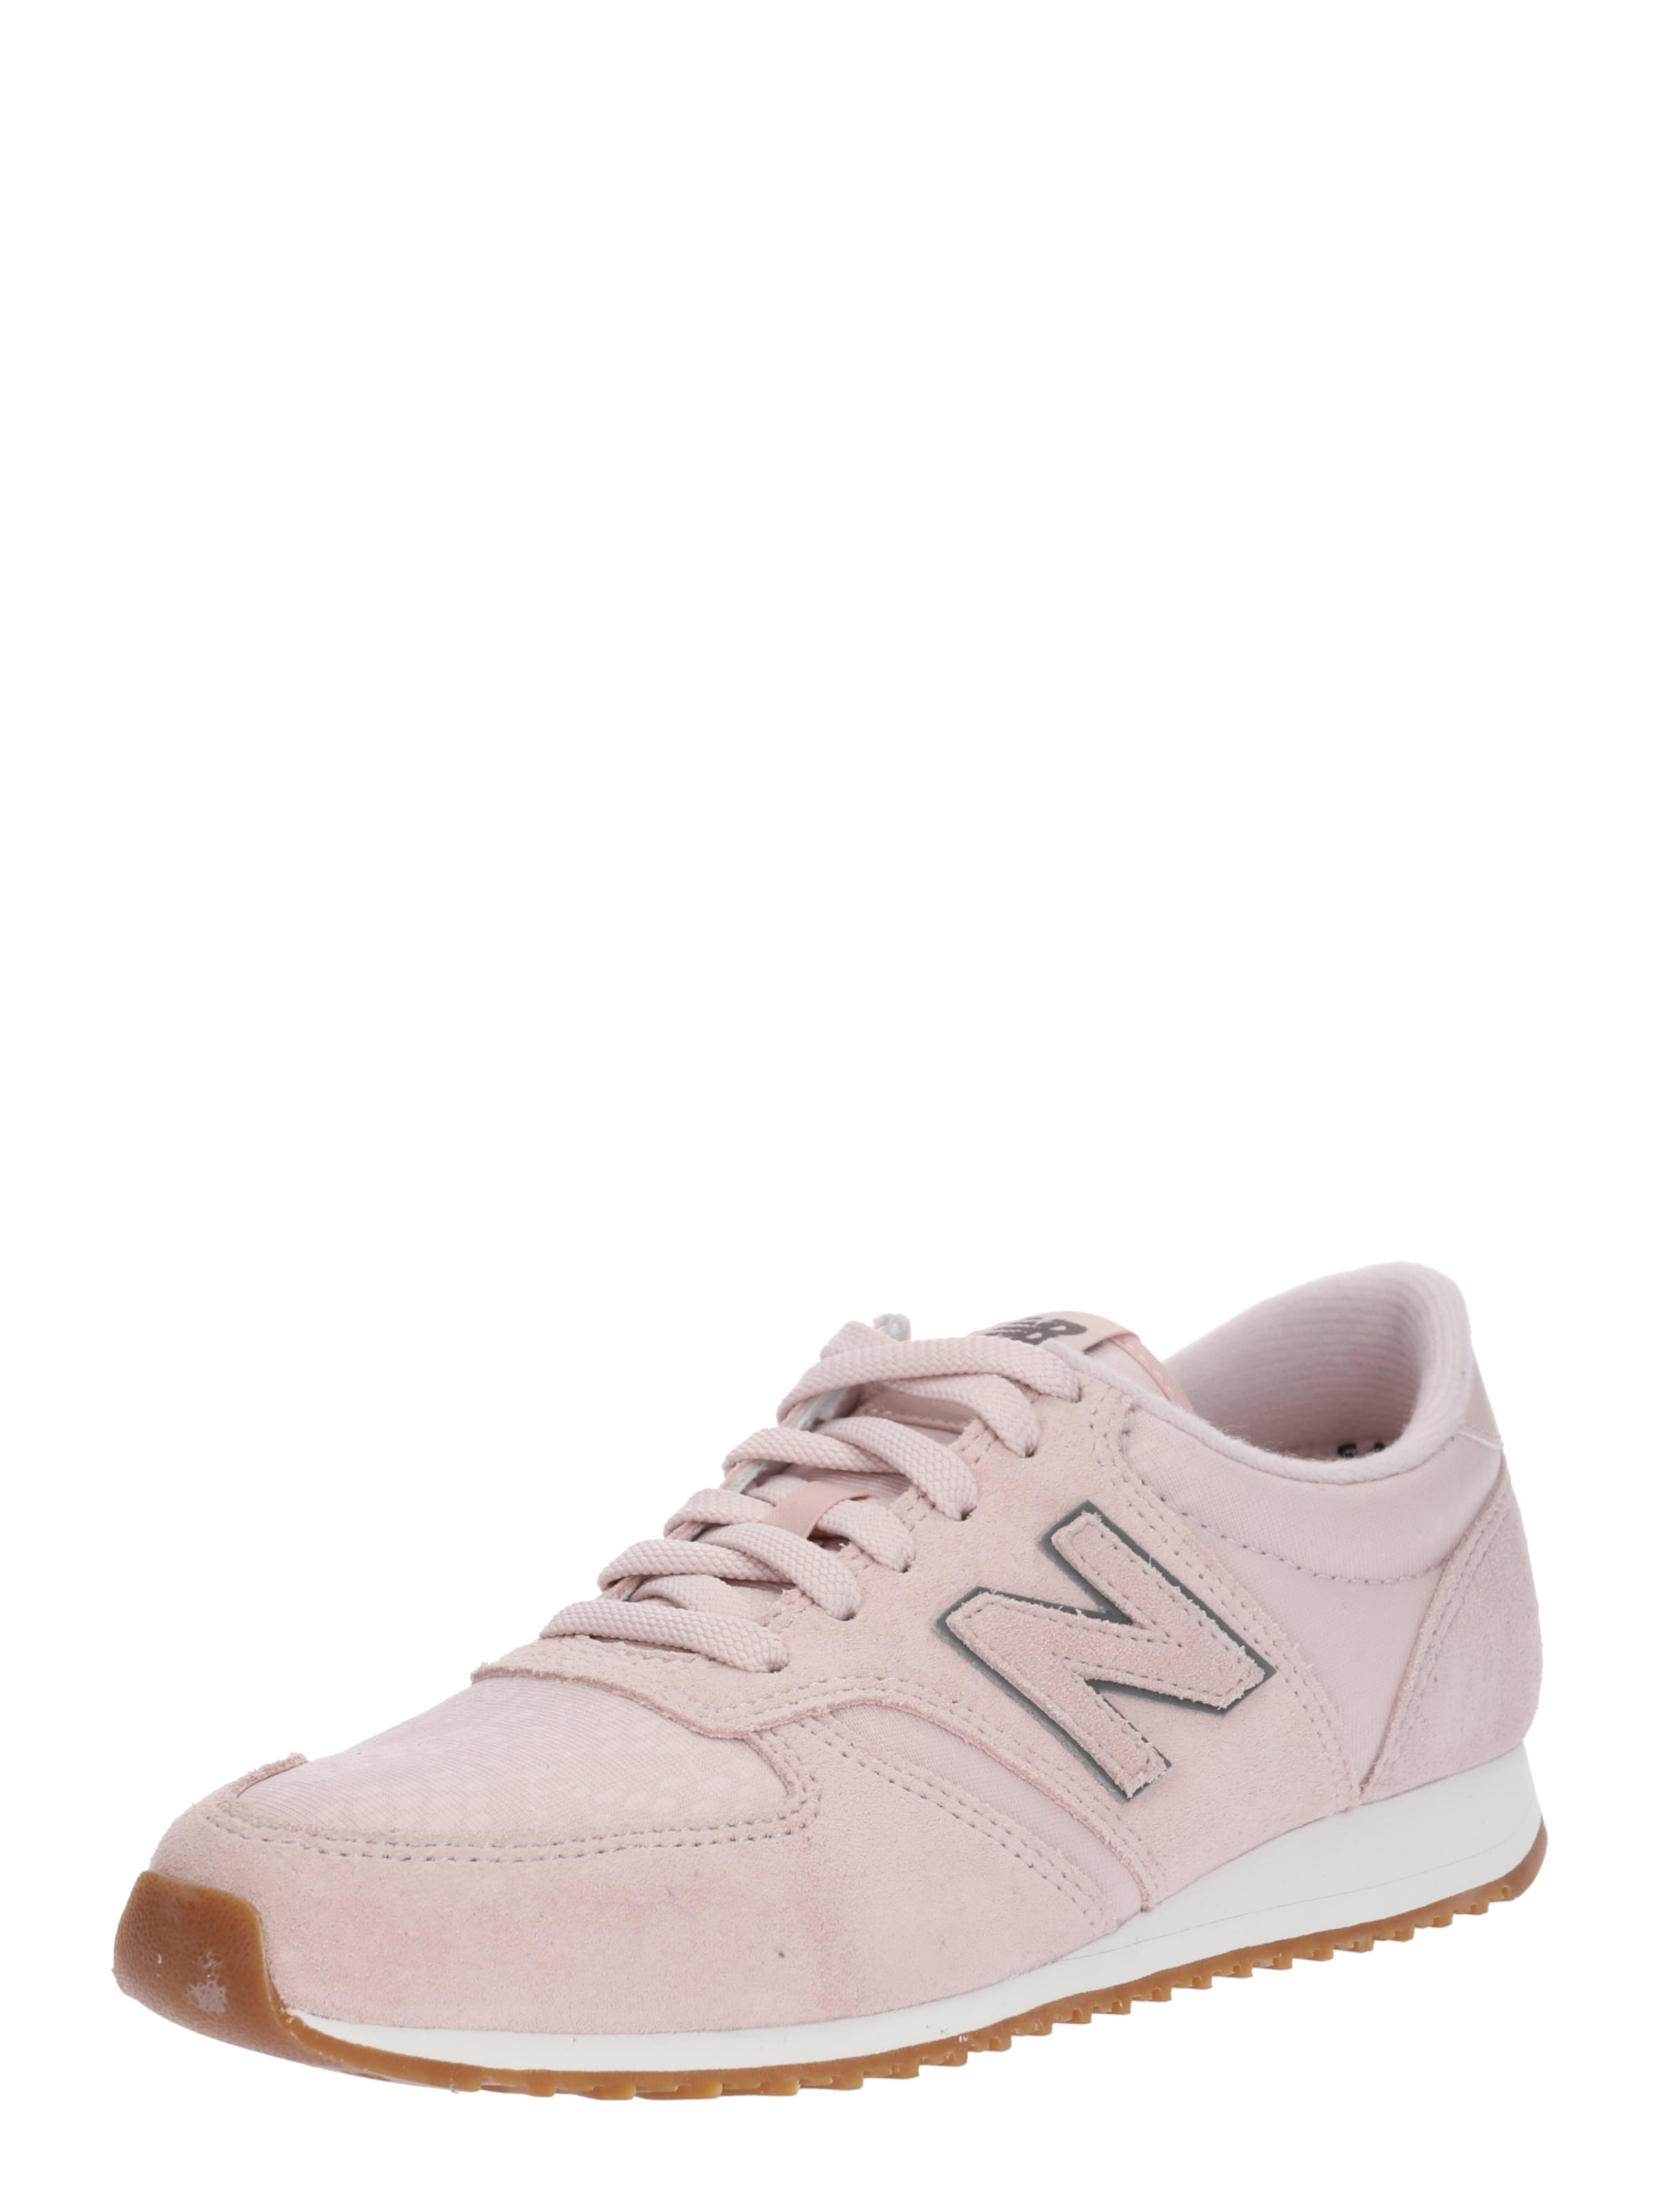 New Balance En 'wl420gpg' Basses Rose Baskets SUpGLVzqM